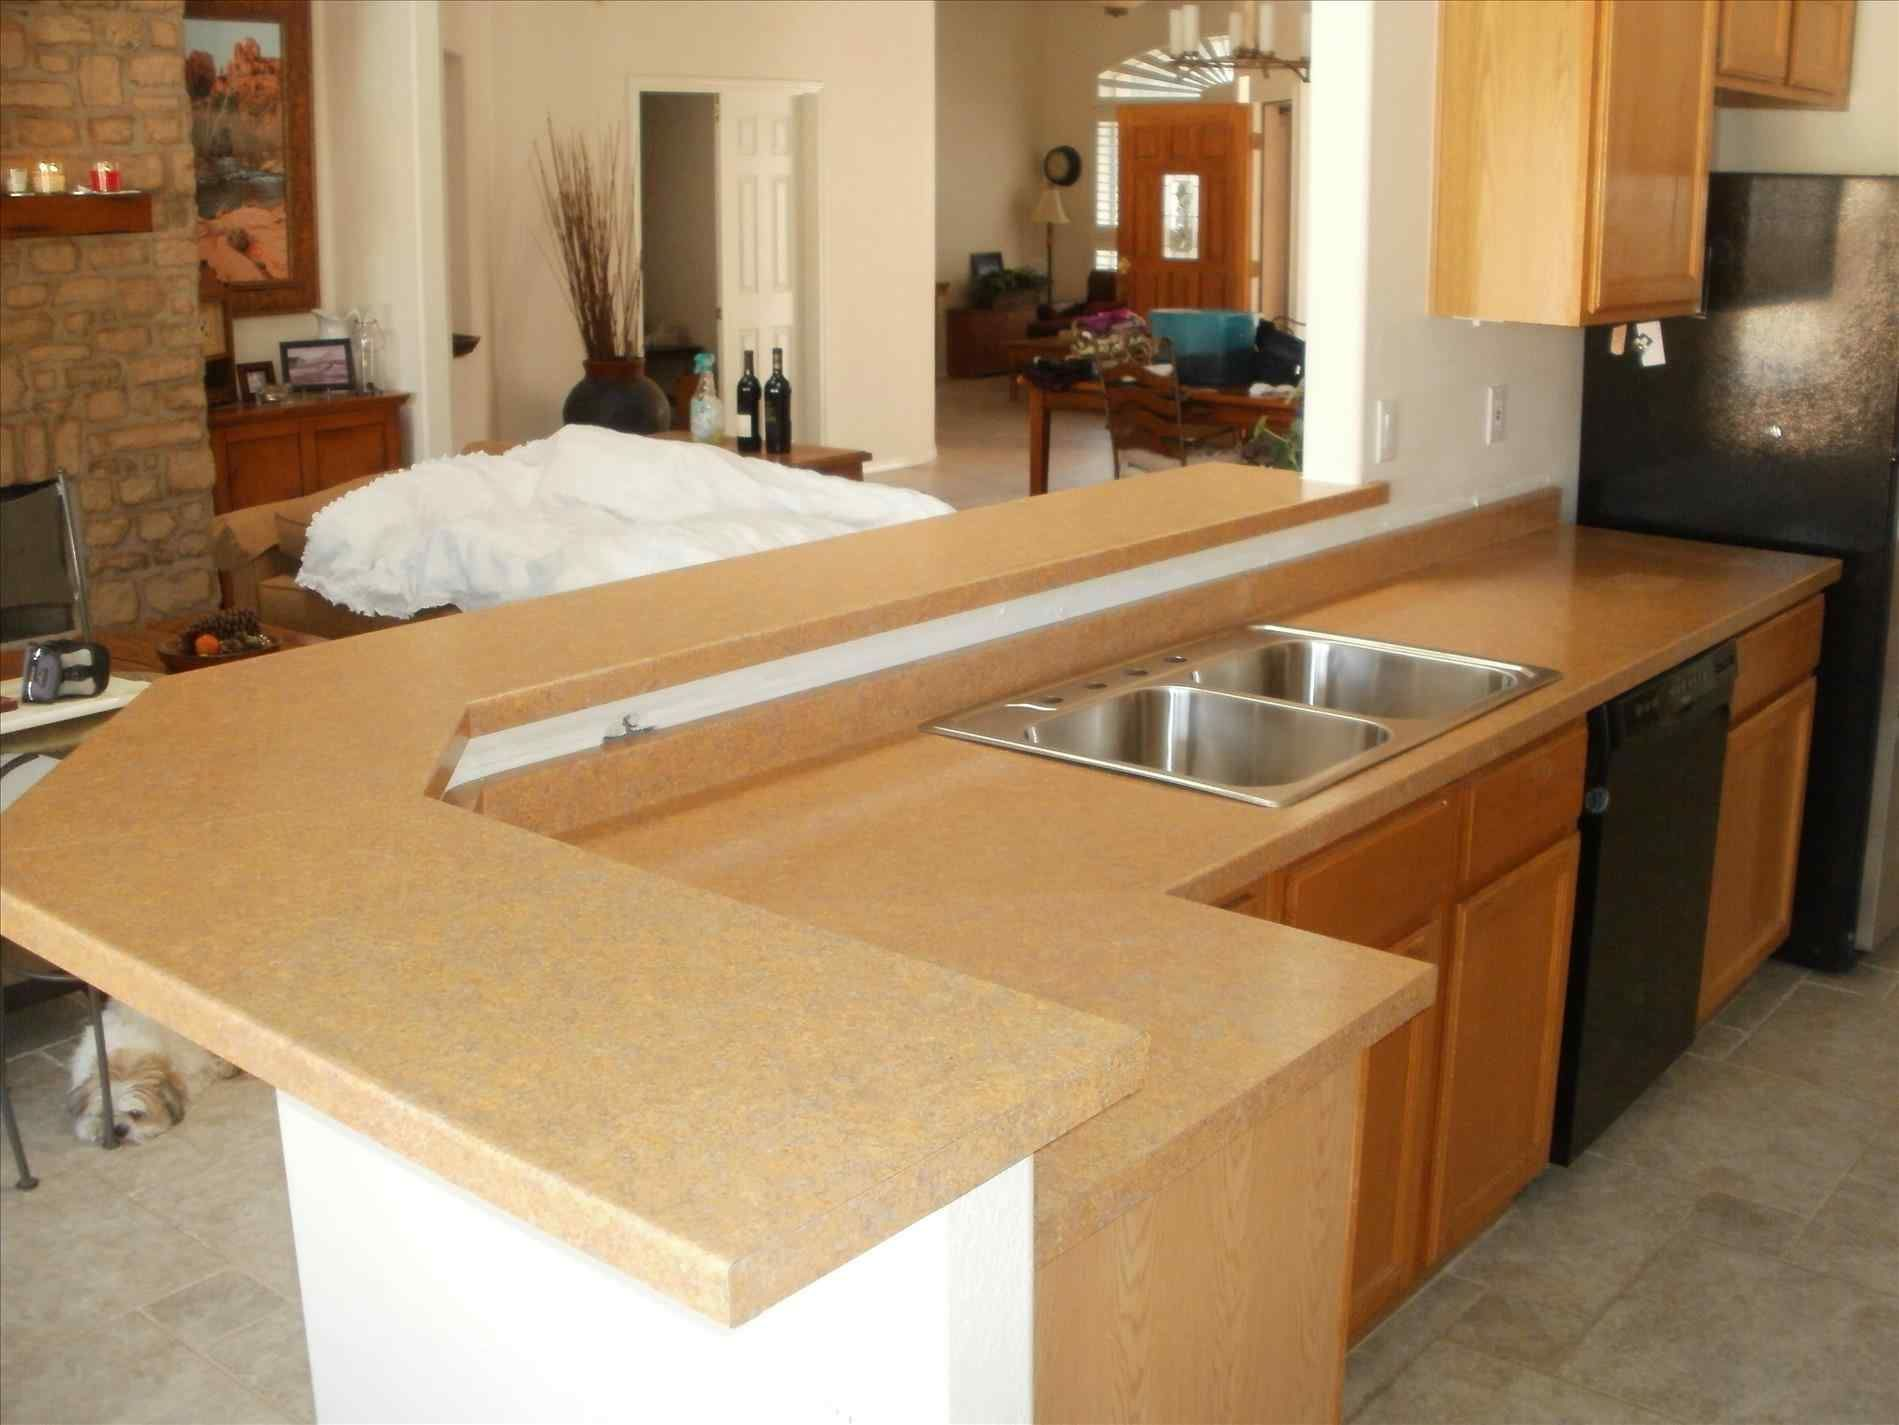 12 Top And Unique Laminate Countertops For Your Kitchen Laminate